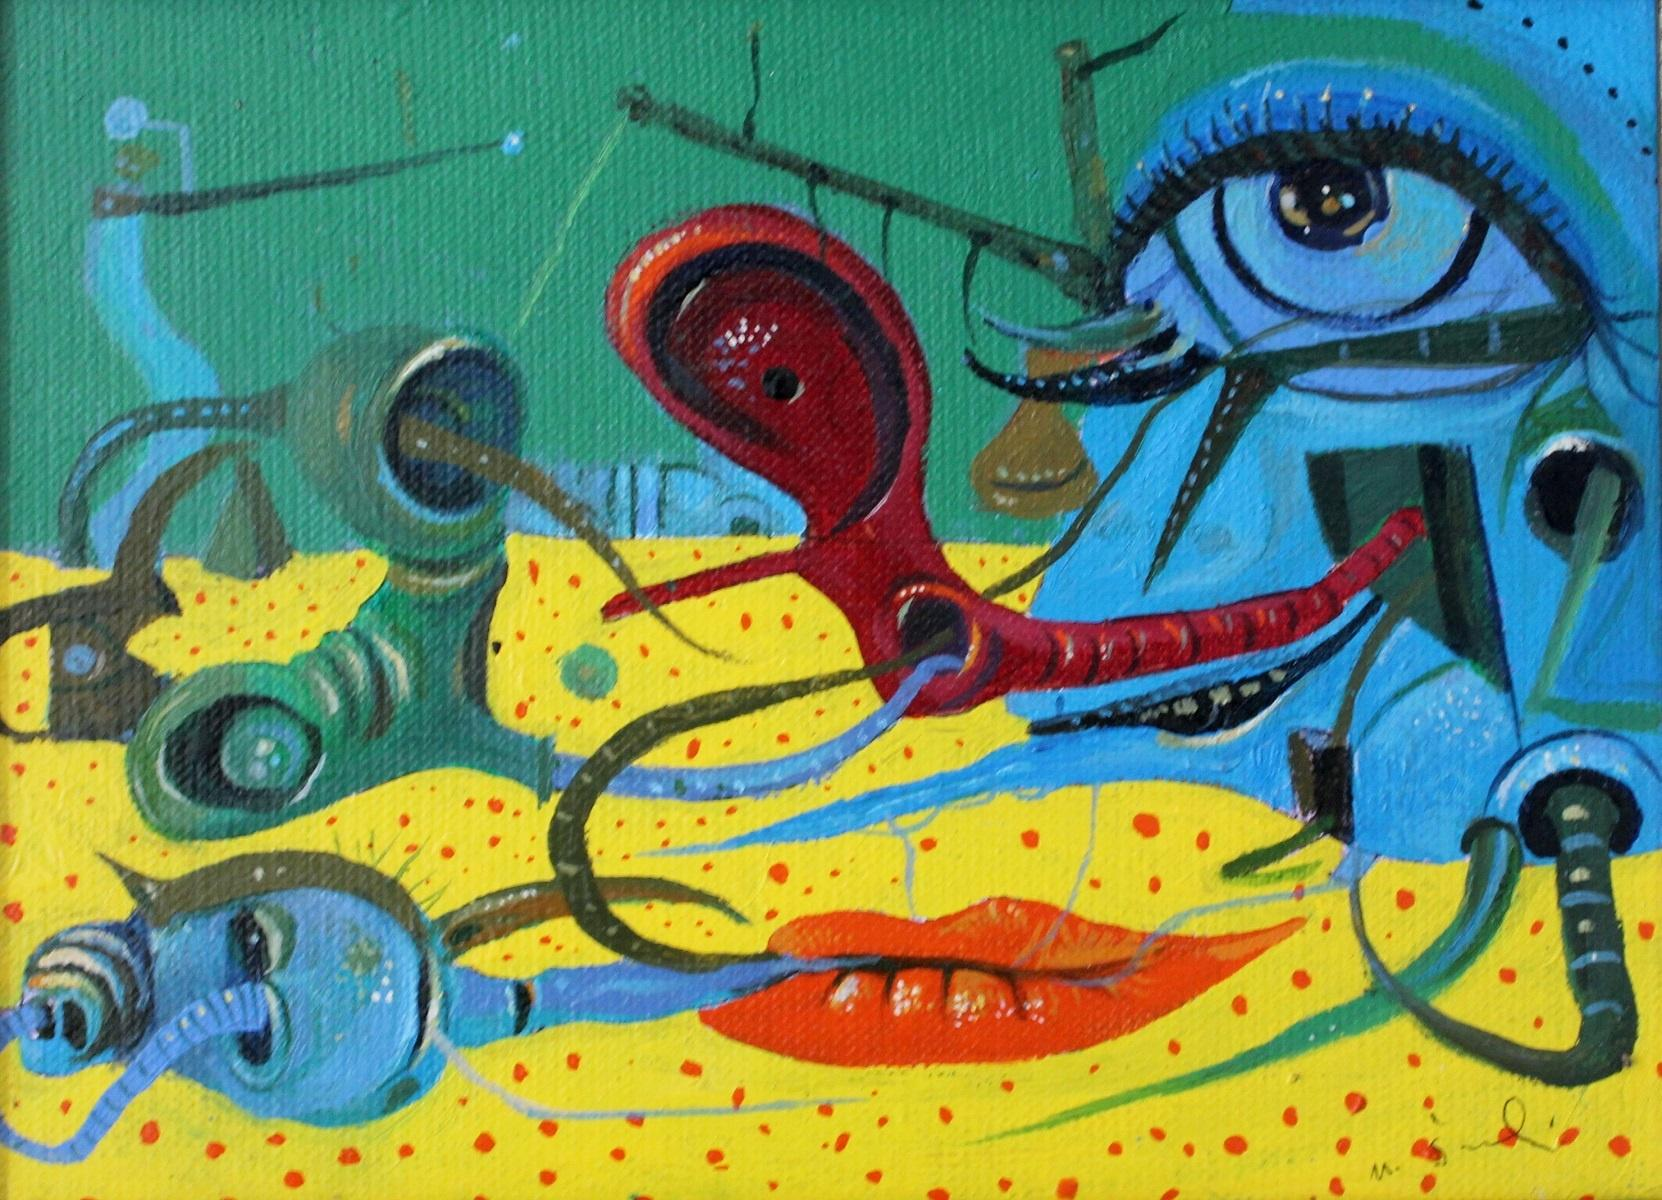 Composition - Contemporary Surreal Painting, Vibrant colors, XXI Century